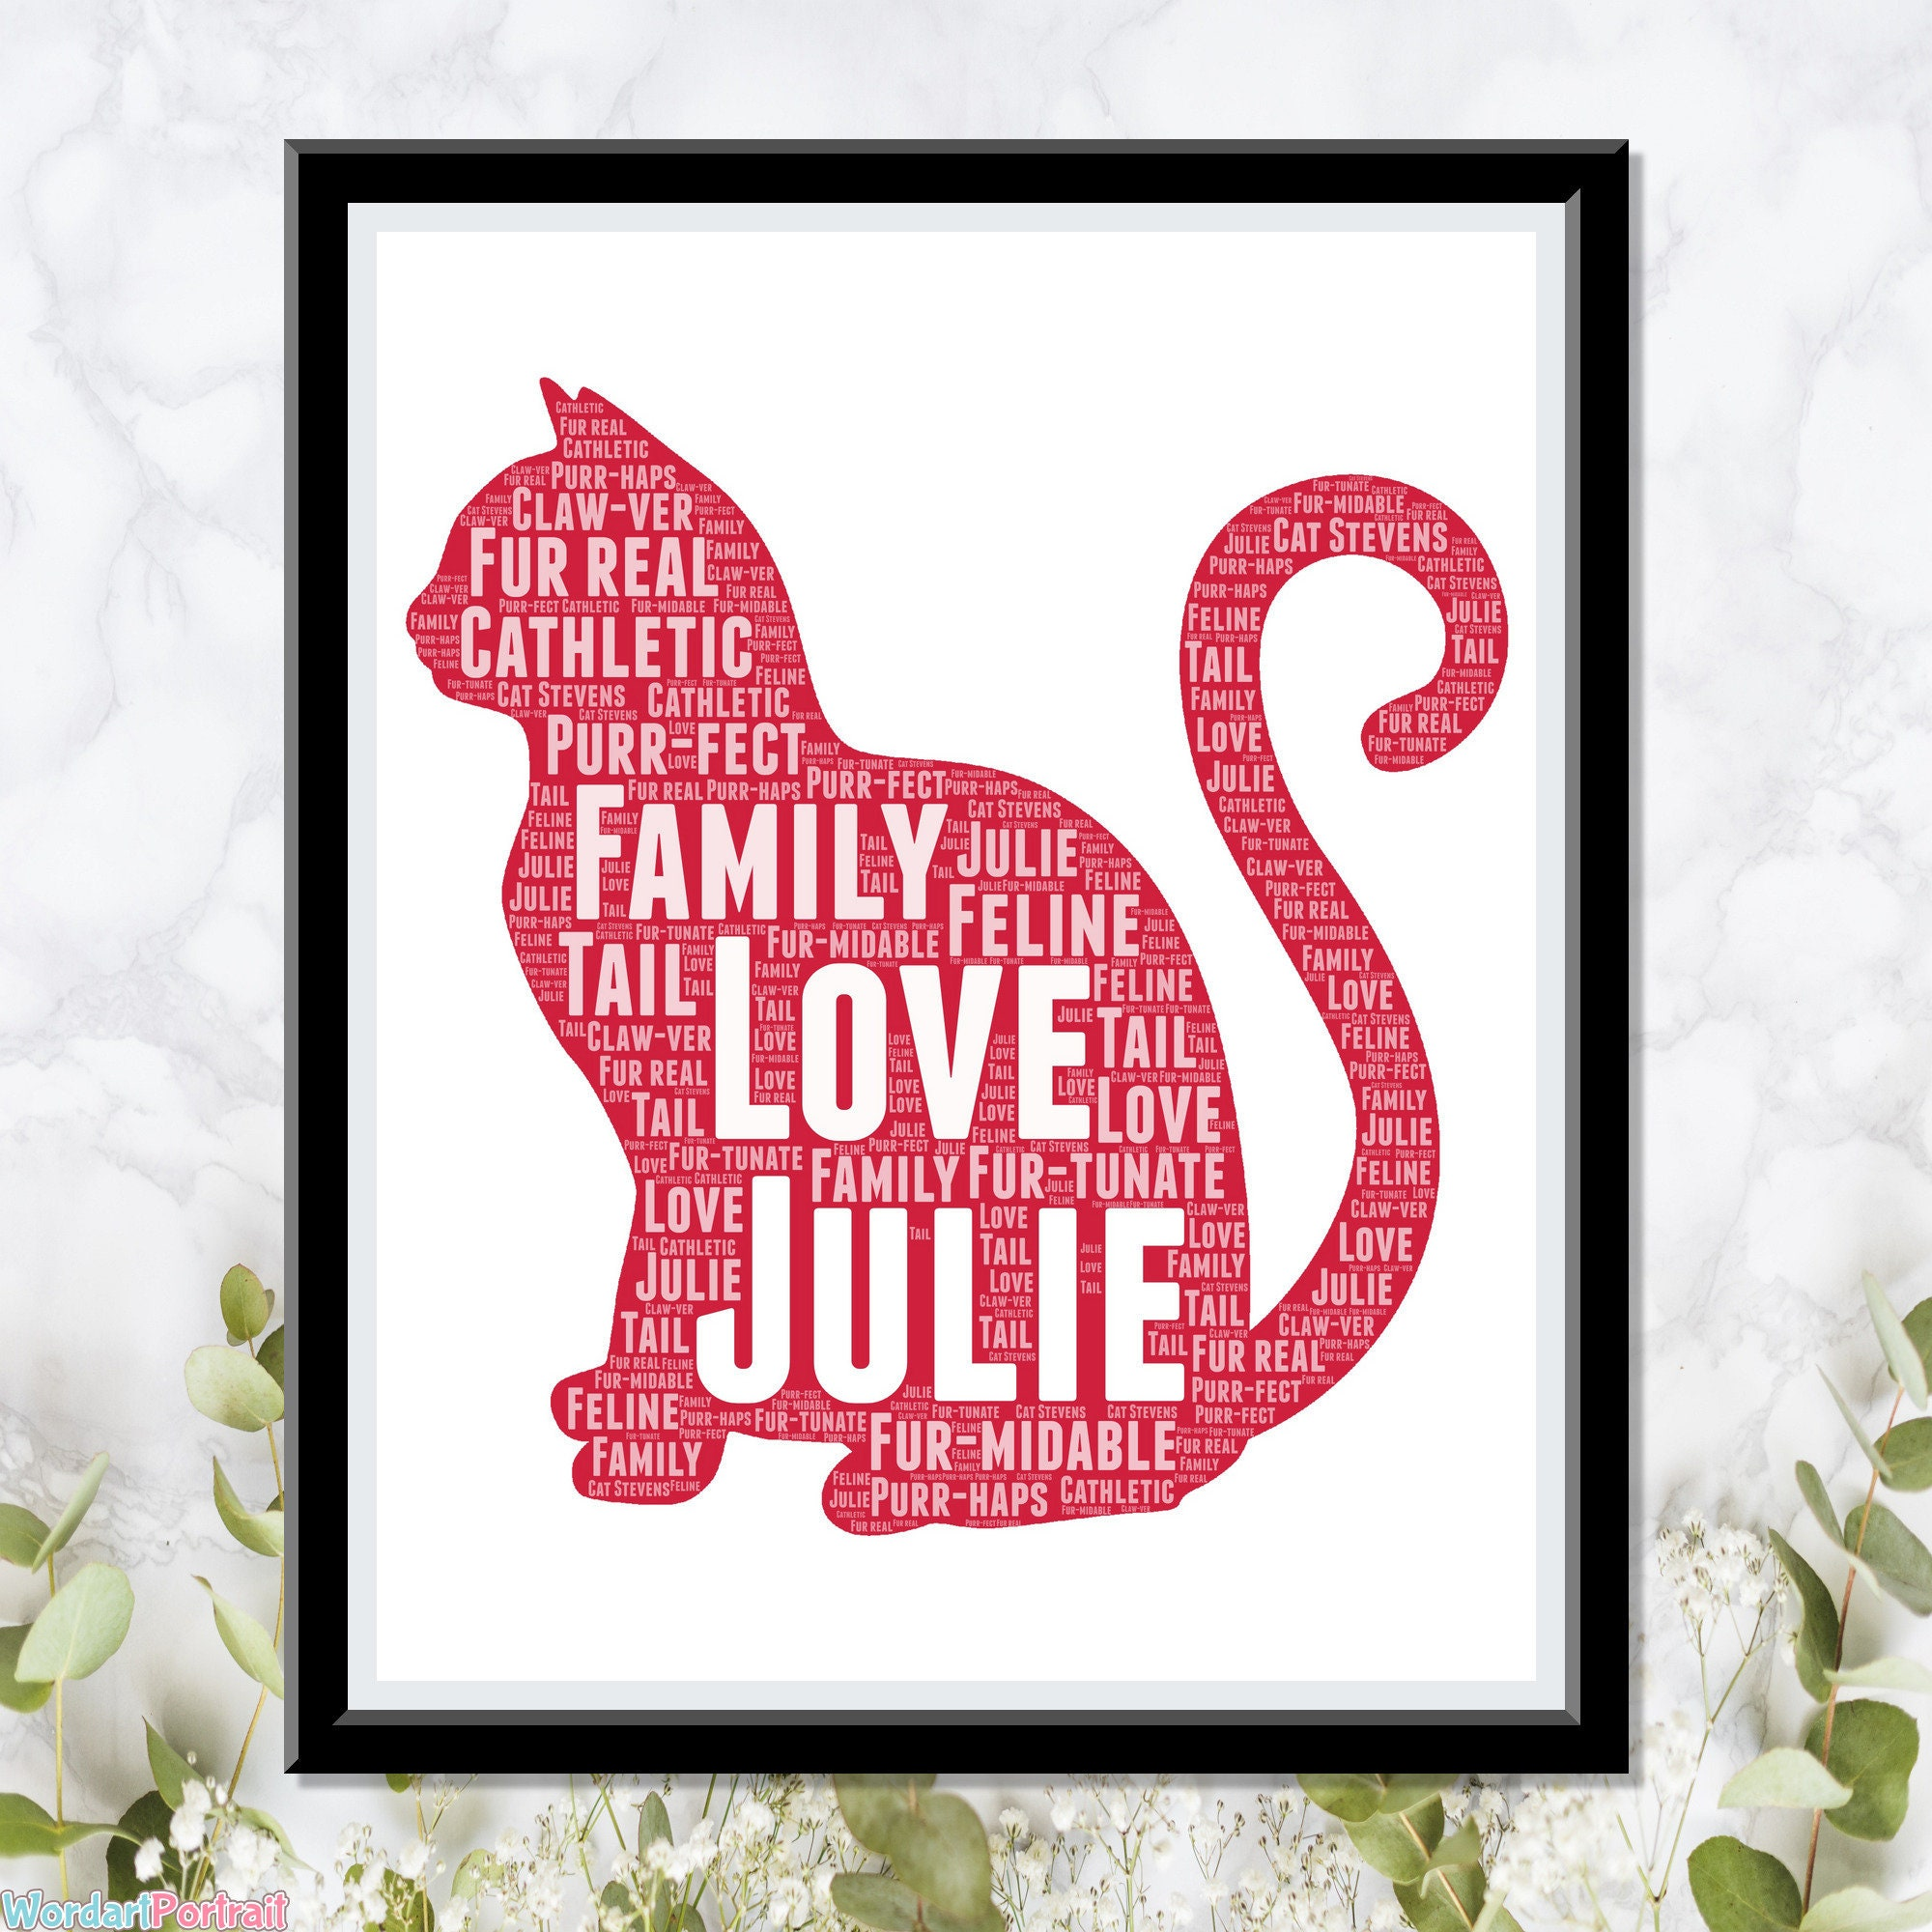 Personalized Cat Gifts- Cute Cat Lovers Gifts- Wordle Art Wall Room Decor - Prints Crazy Cat Meow Lady Gift Pets Mum Mom Dad Owner Print Gifts